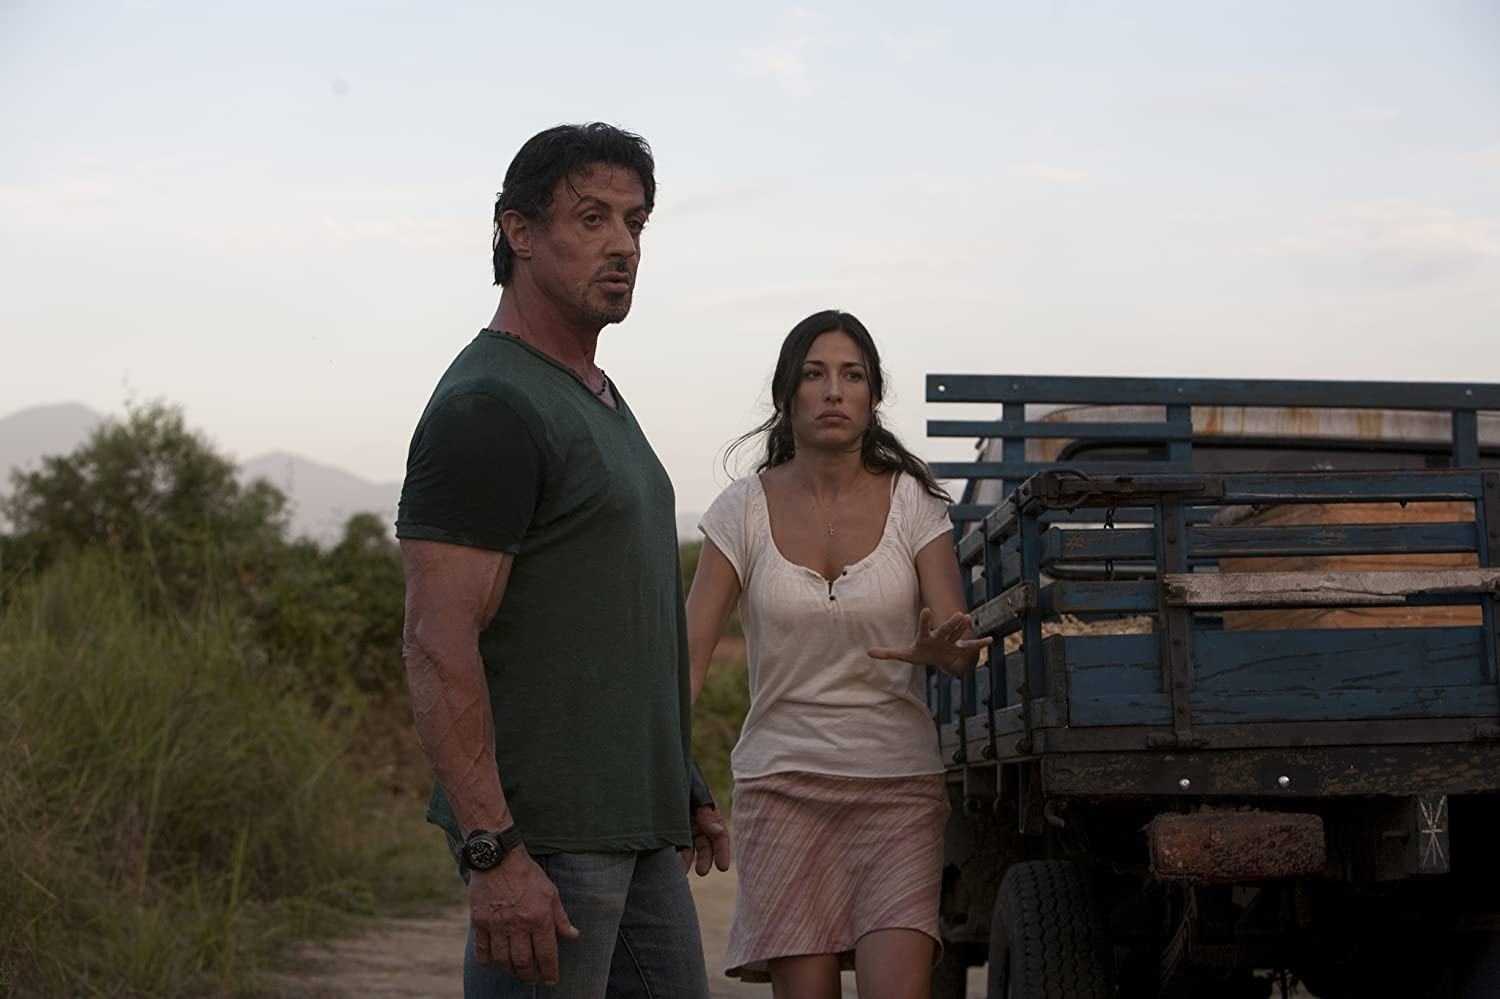 Sylvester Stallone and Giselle Itié in The Expendables (2010)